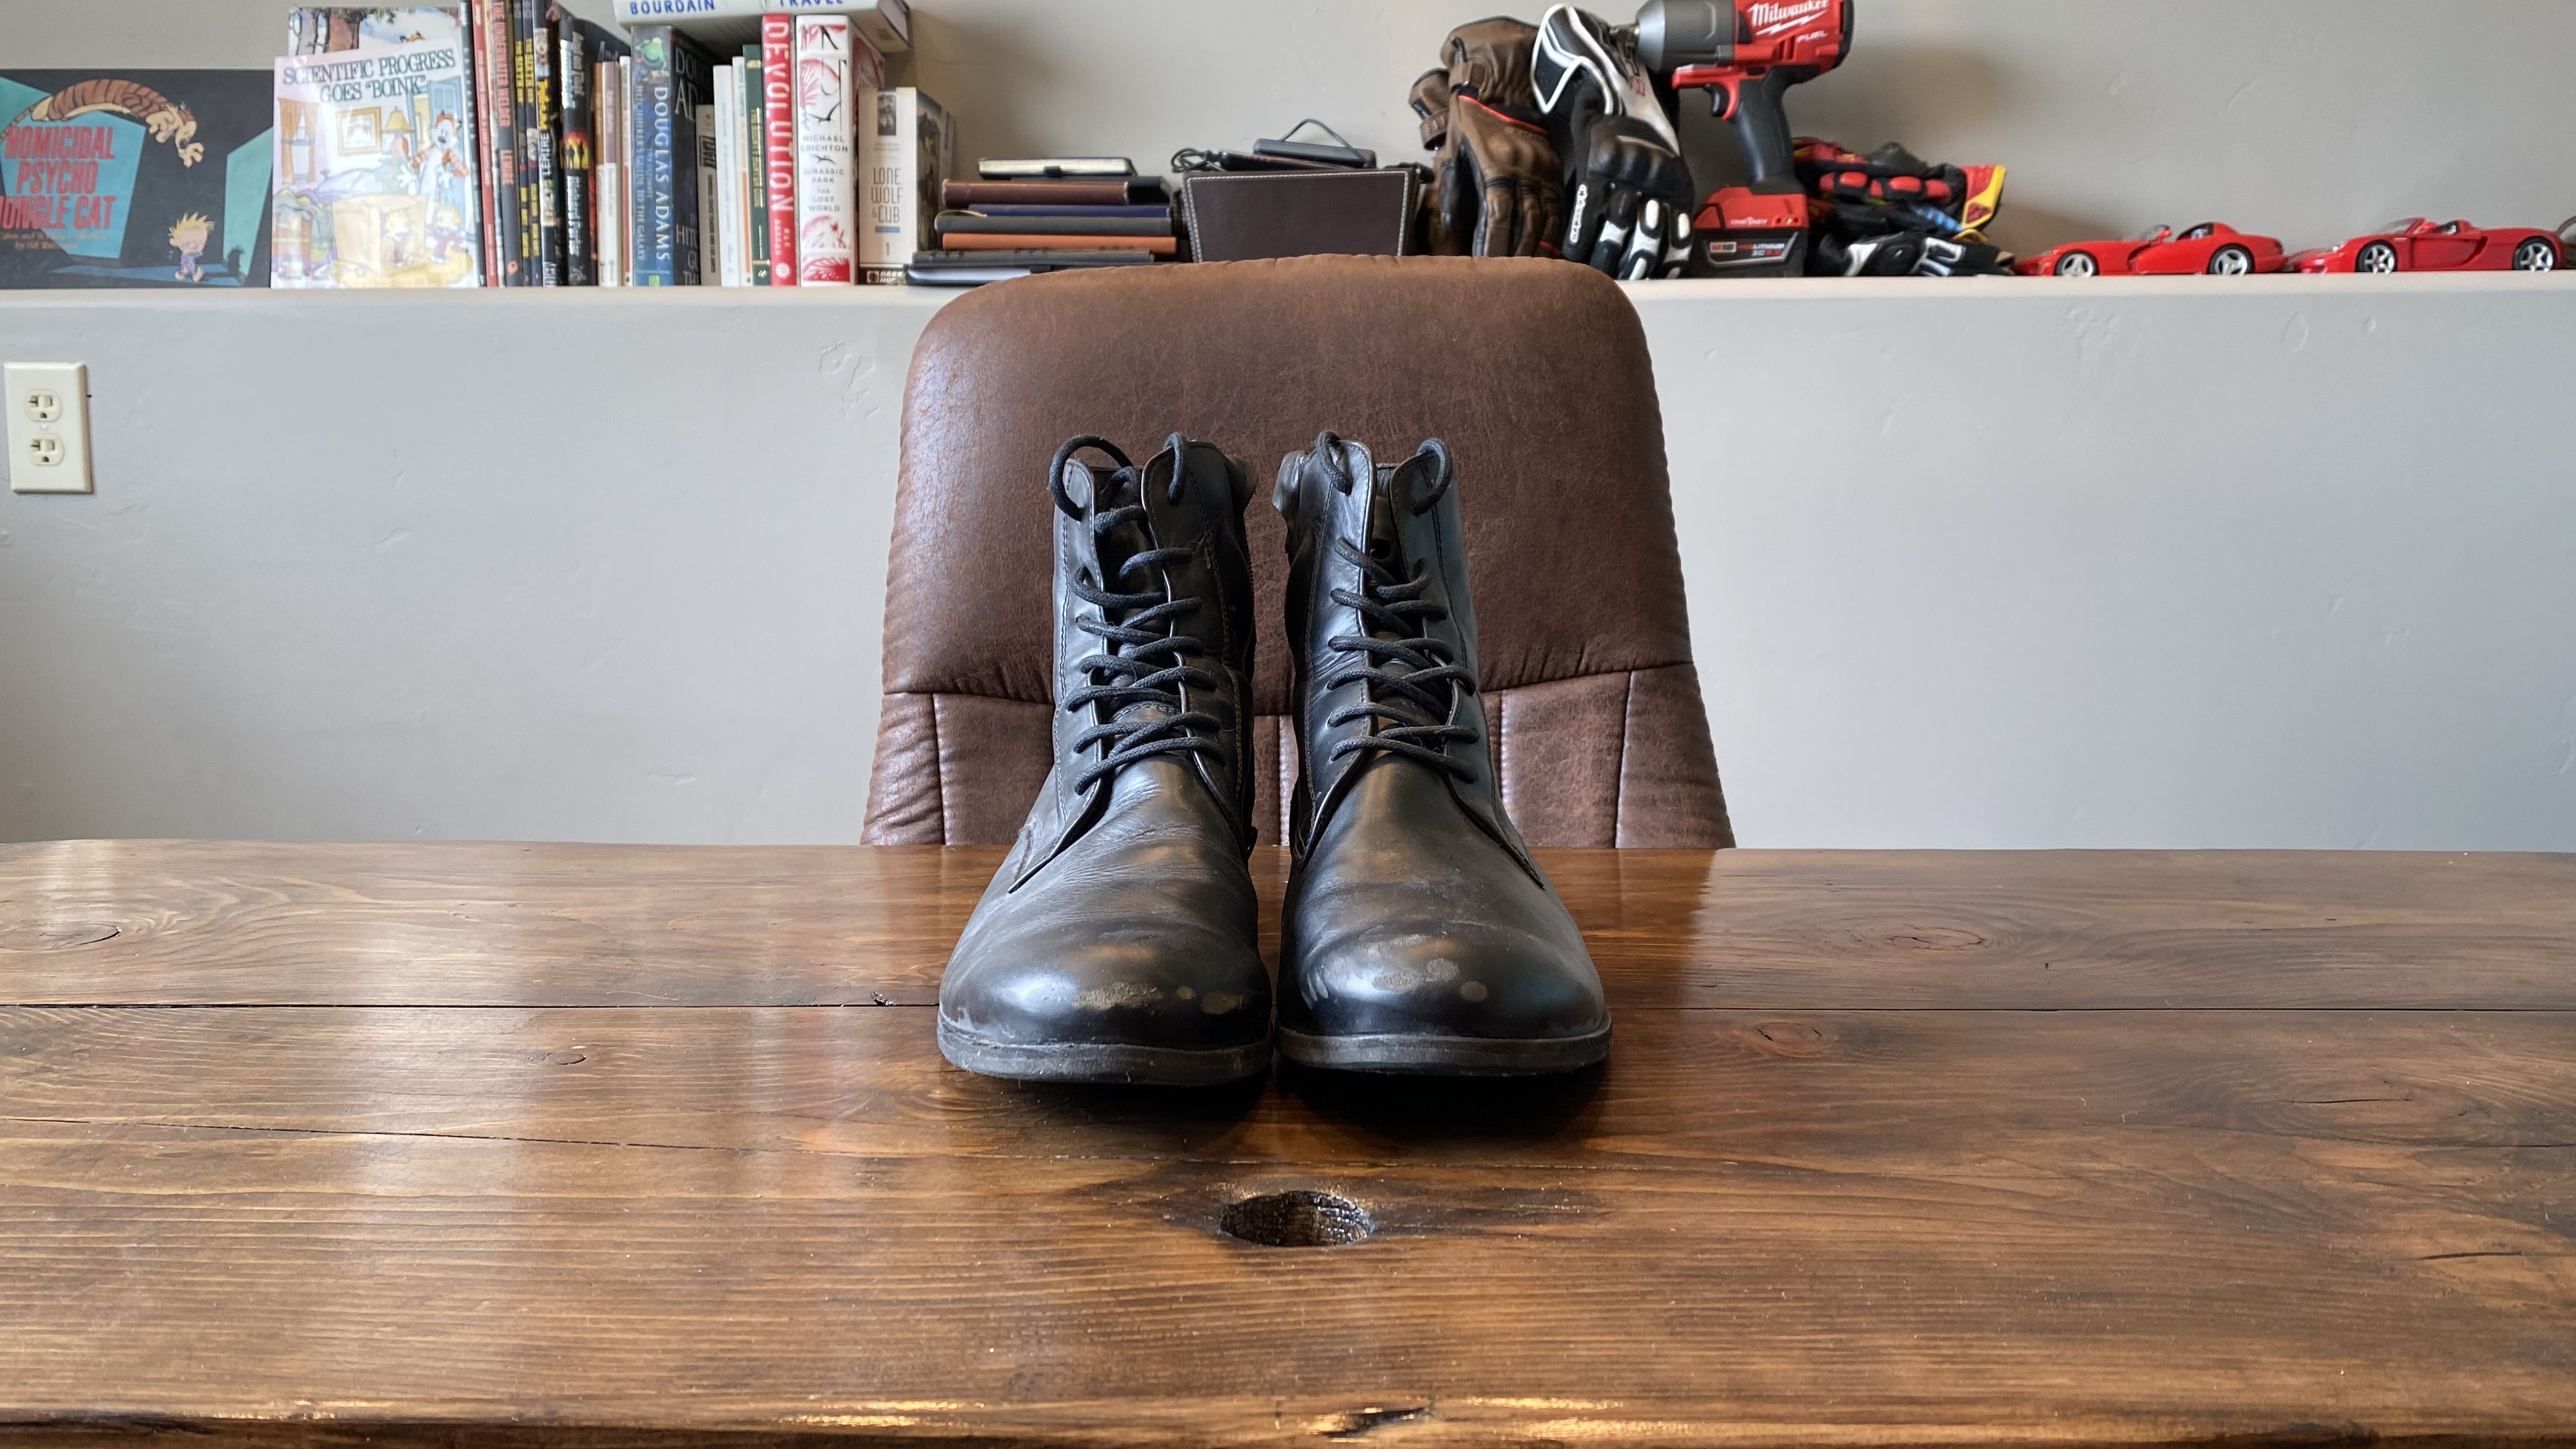 Style motorcycle boots.